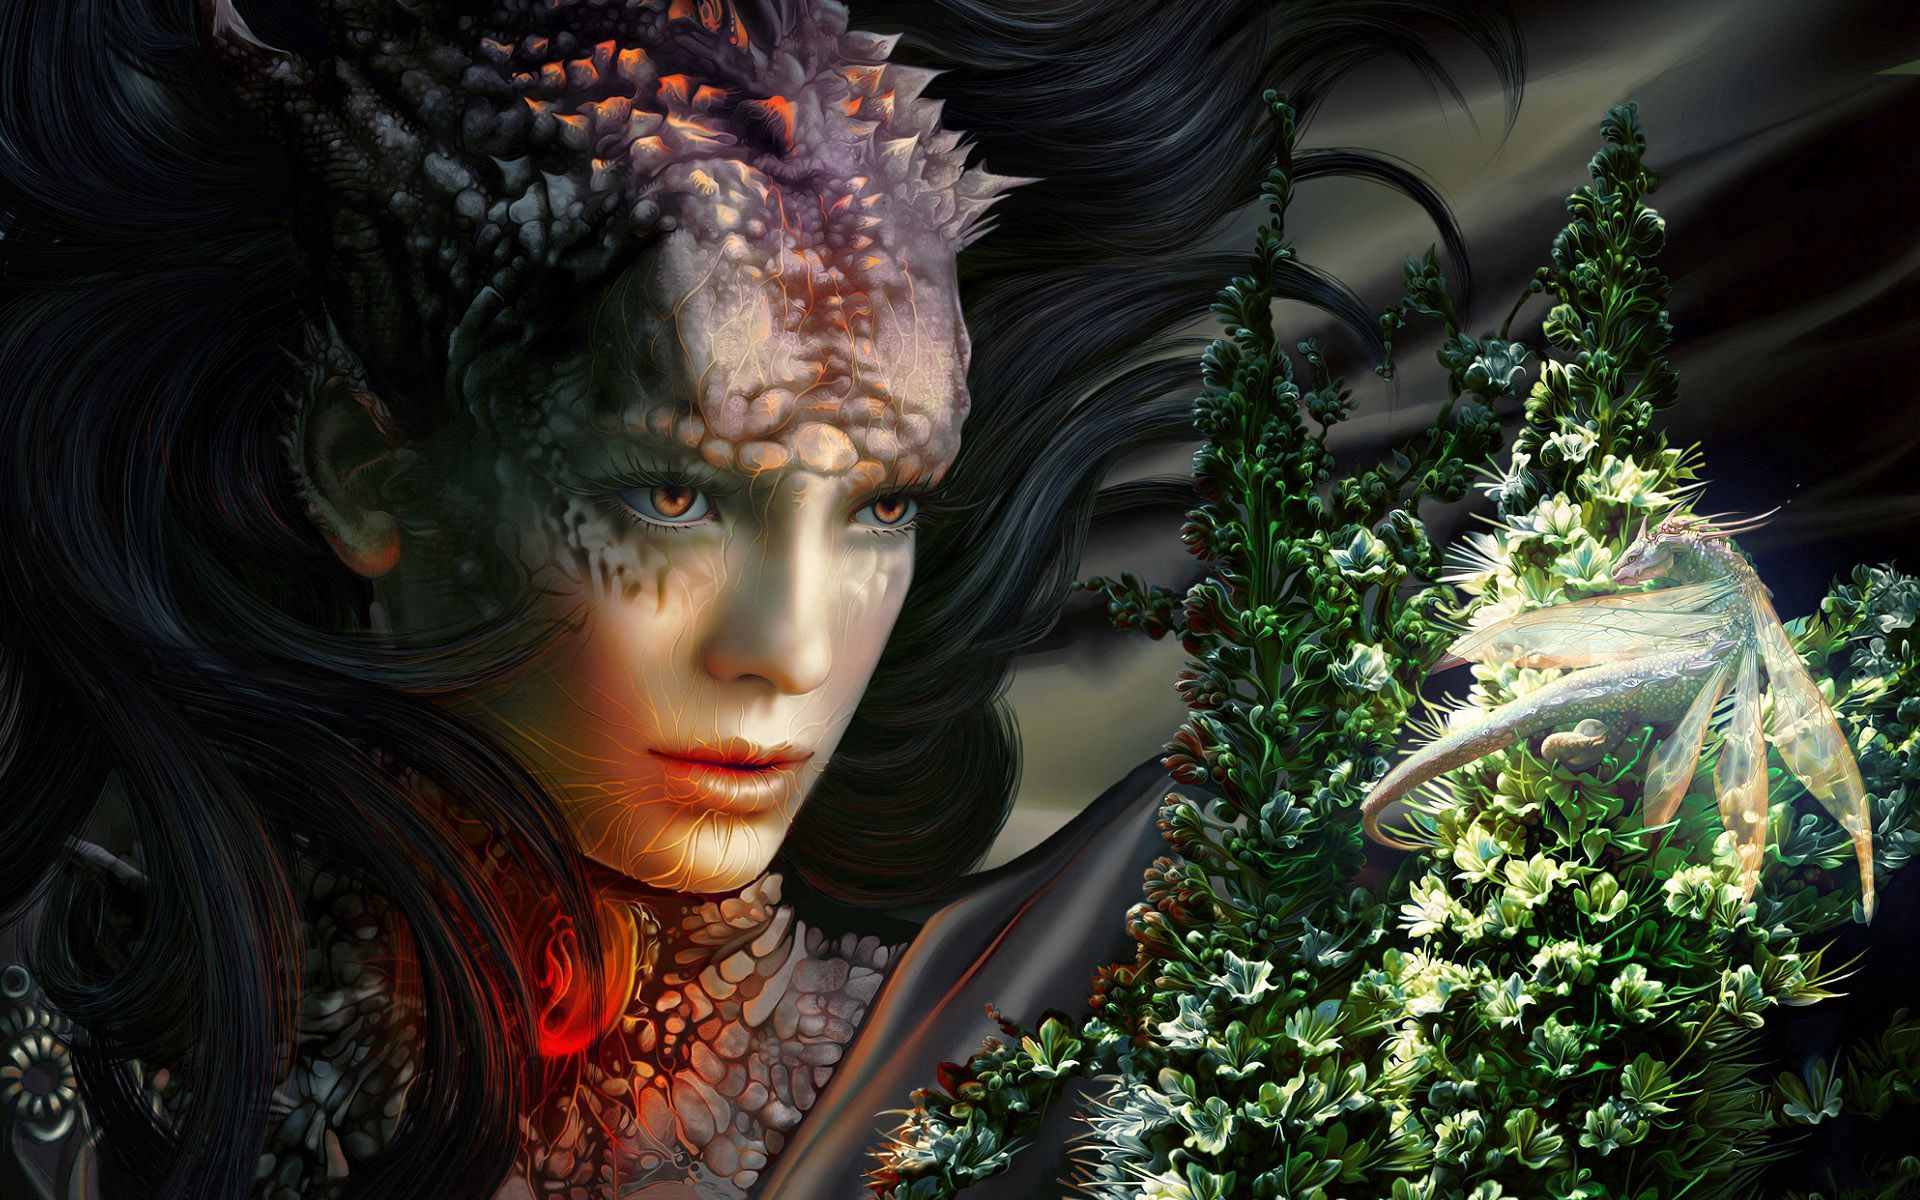 137087 download wallpaper Fantasy, Girl, Sight, Opinion, Dragon, Monster screensavers and pictures for free